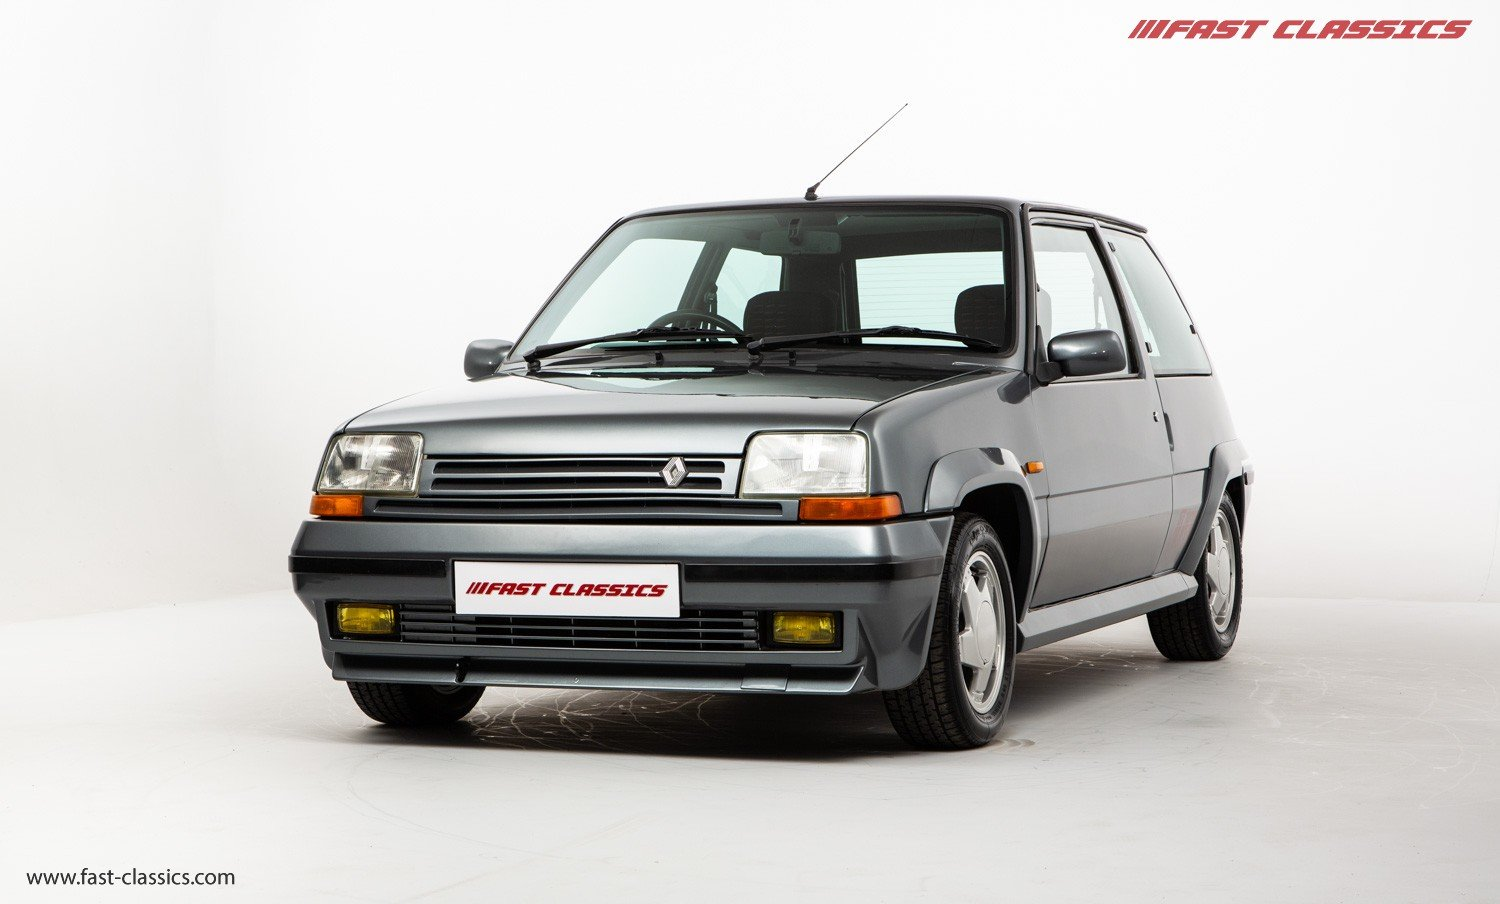 1991 RENAULT R5 GT TURBO // UK RHD // 50K MILES // LATE PRODUCTIO For Sale (picture 2 of 21)